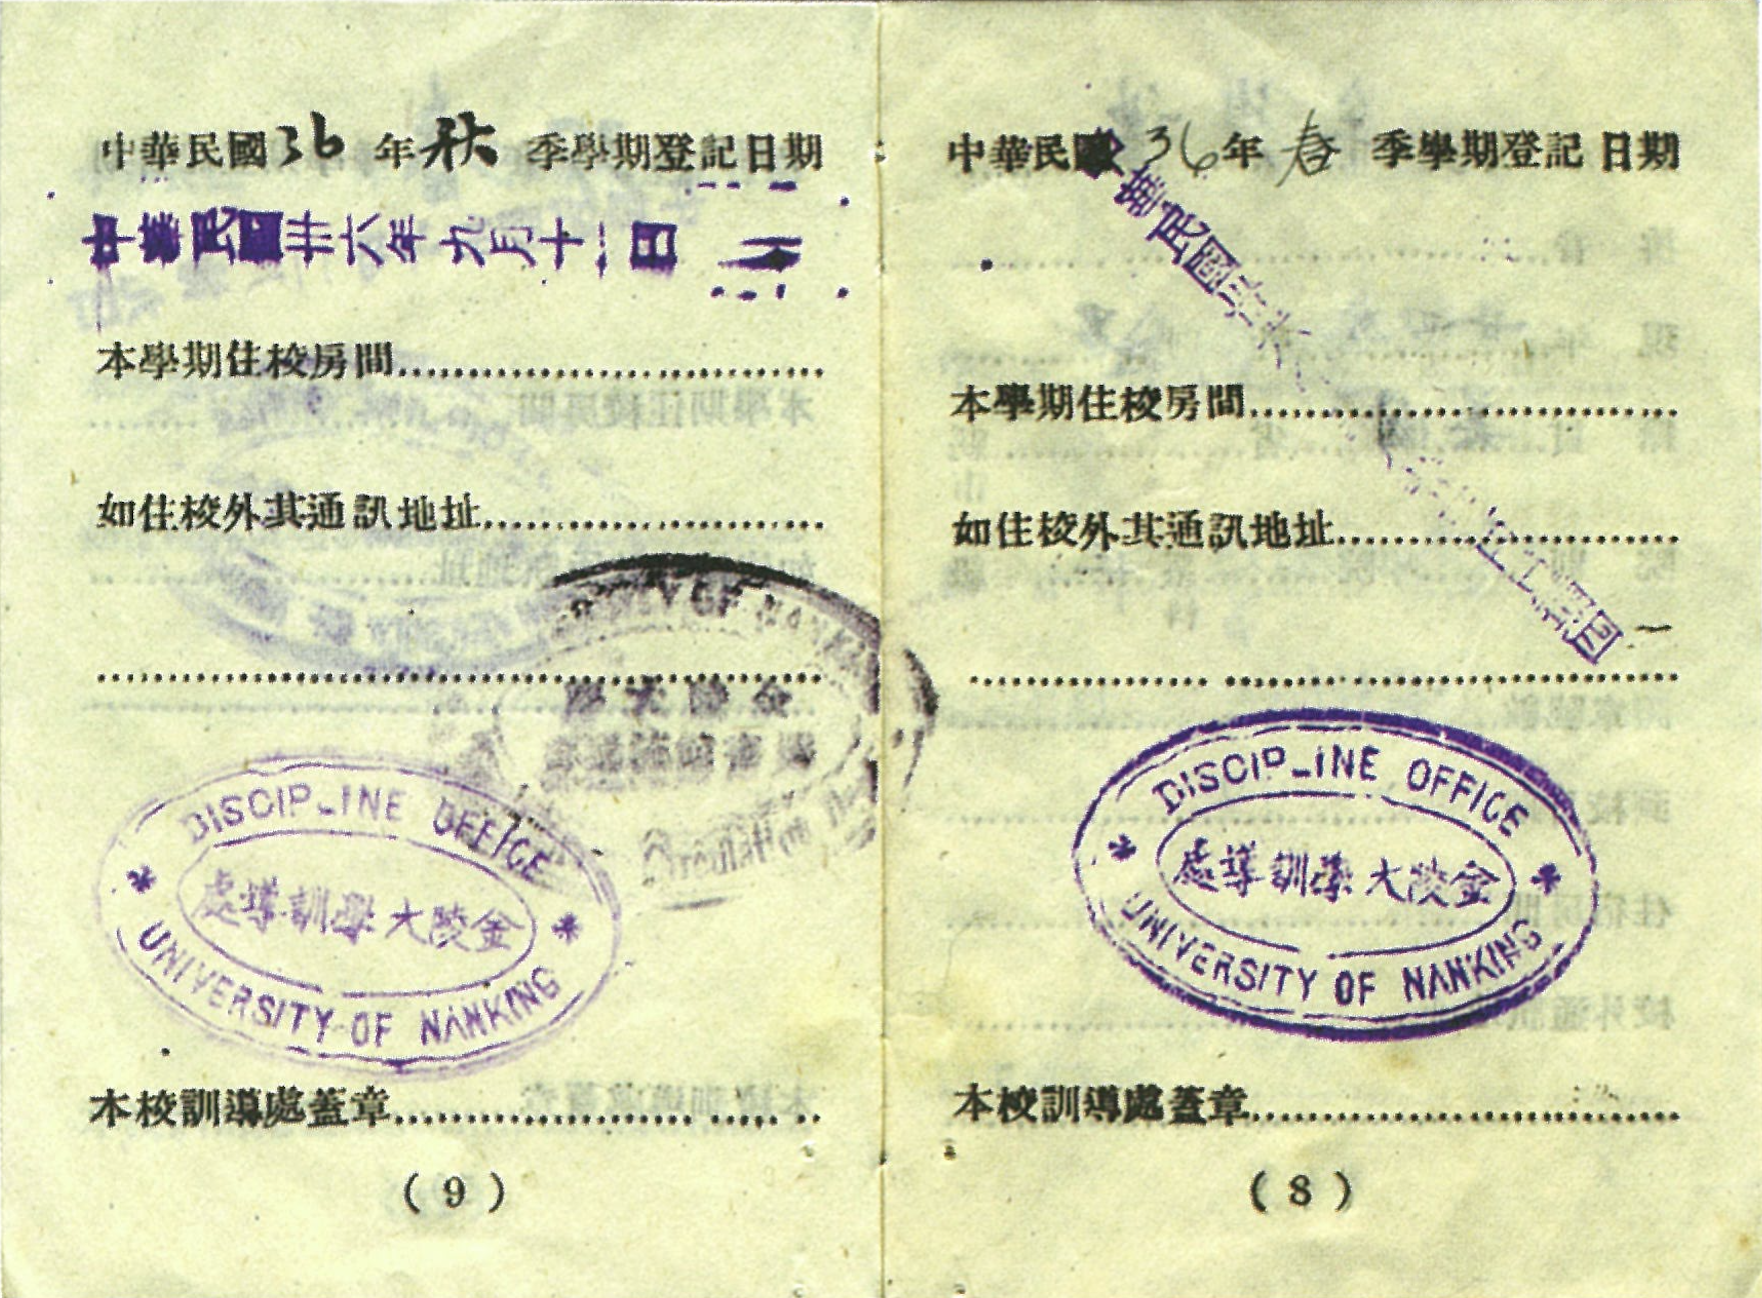 Fig.5d. Right page stamped to mark the beginning of the spring semester 1947 and the left page stamped to mark the beginning of the fall semester 1947, the author's first and second of three semesters of study at the University of Nanking.